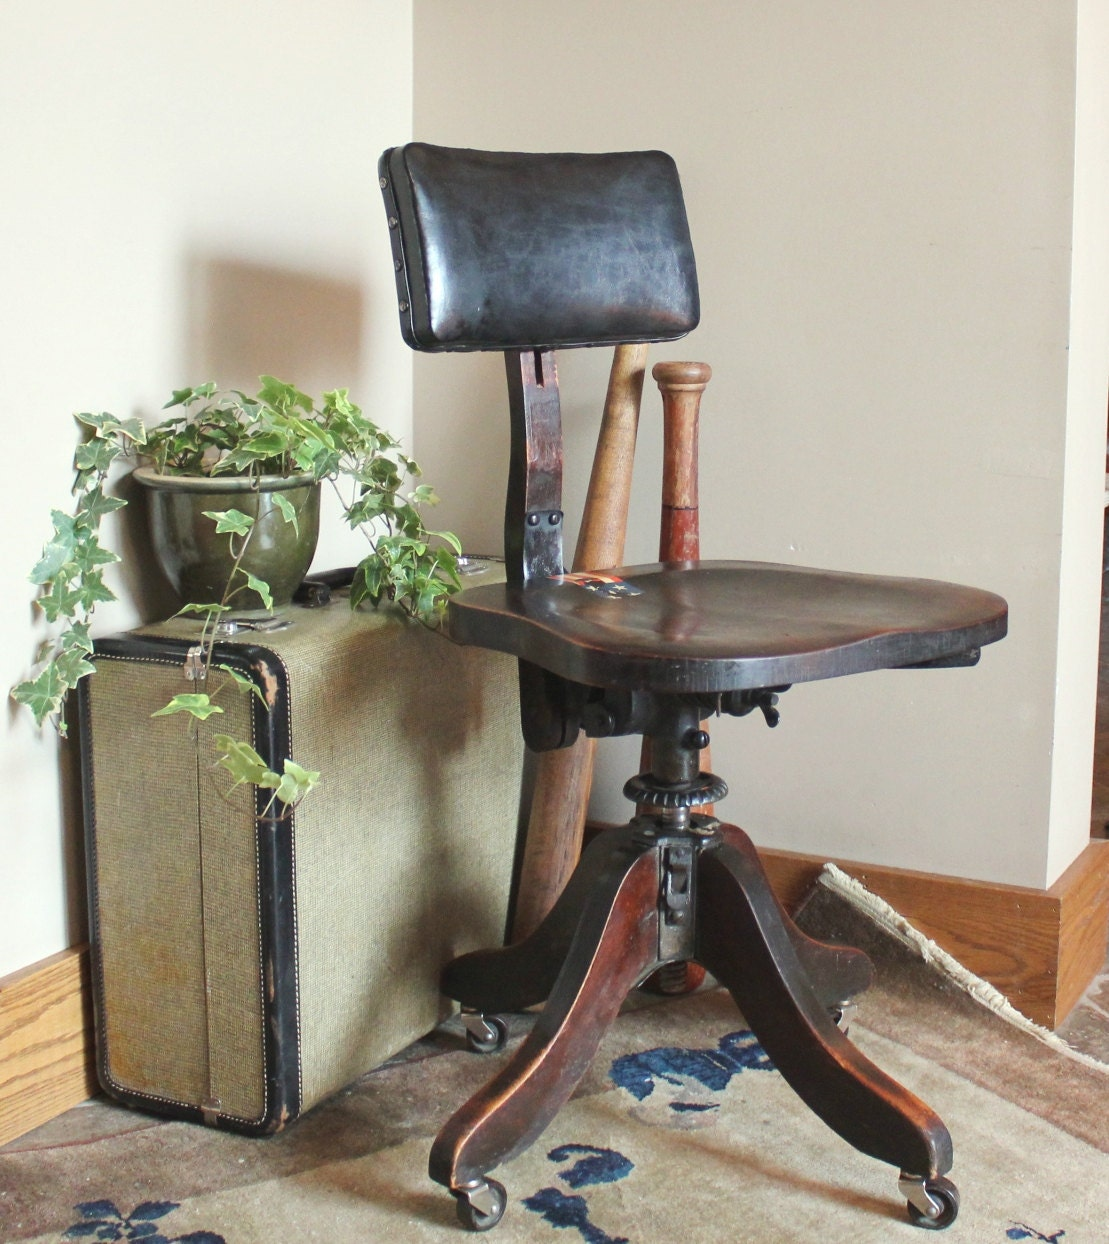 Antique Industrial Adjustable Swivel Office Chair By Heywood